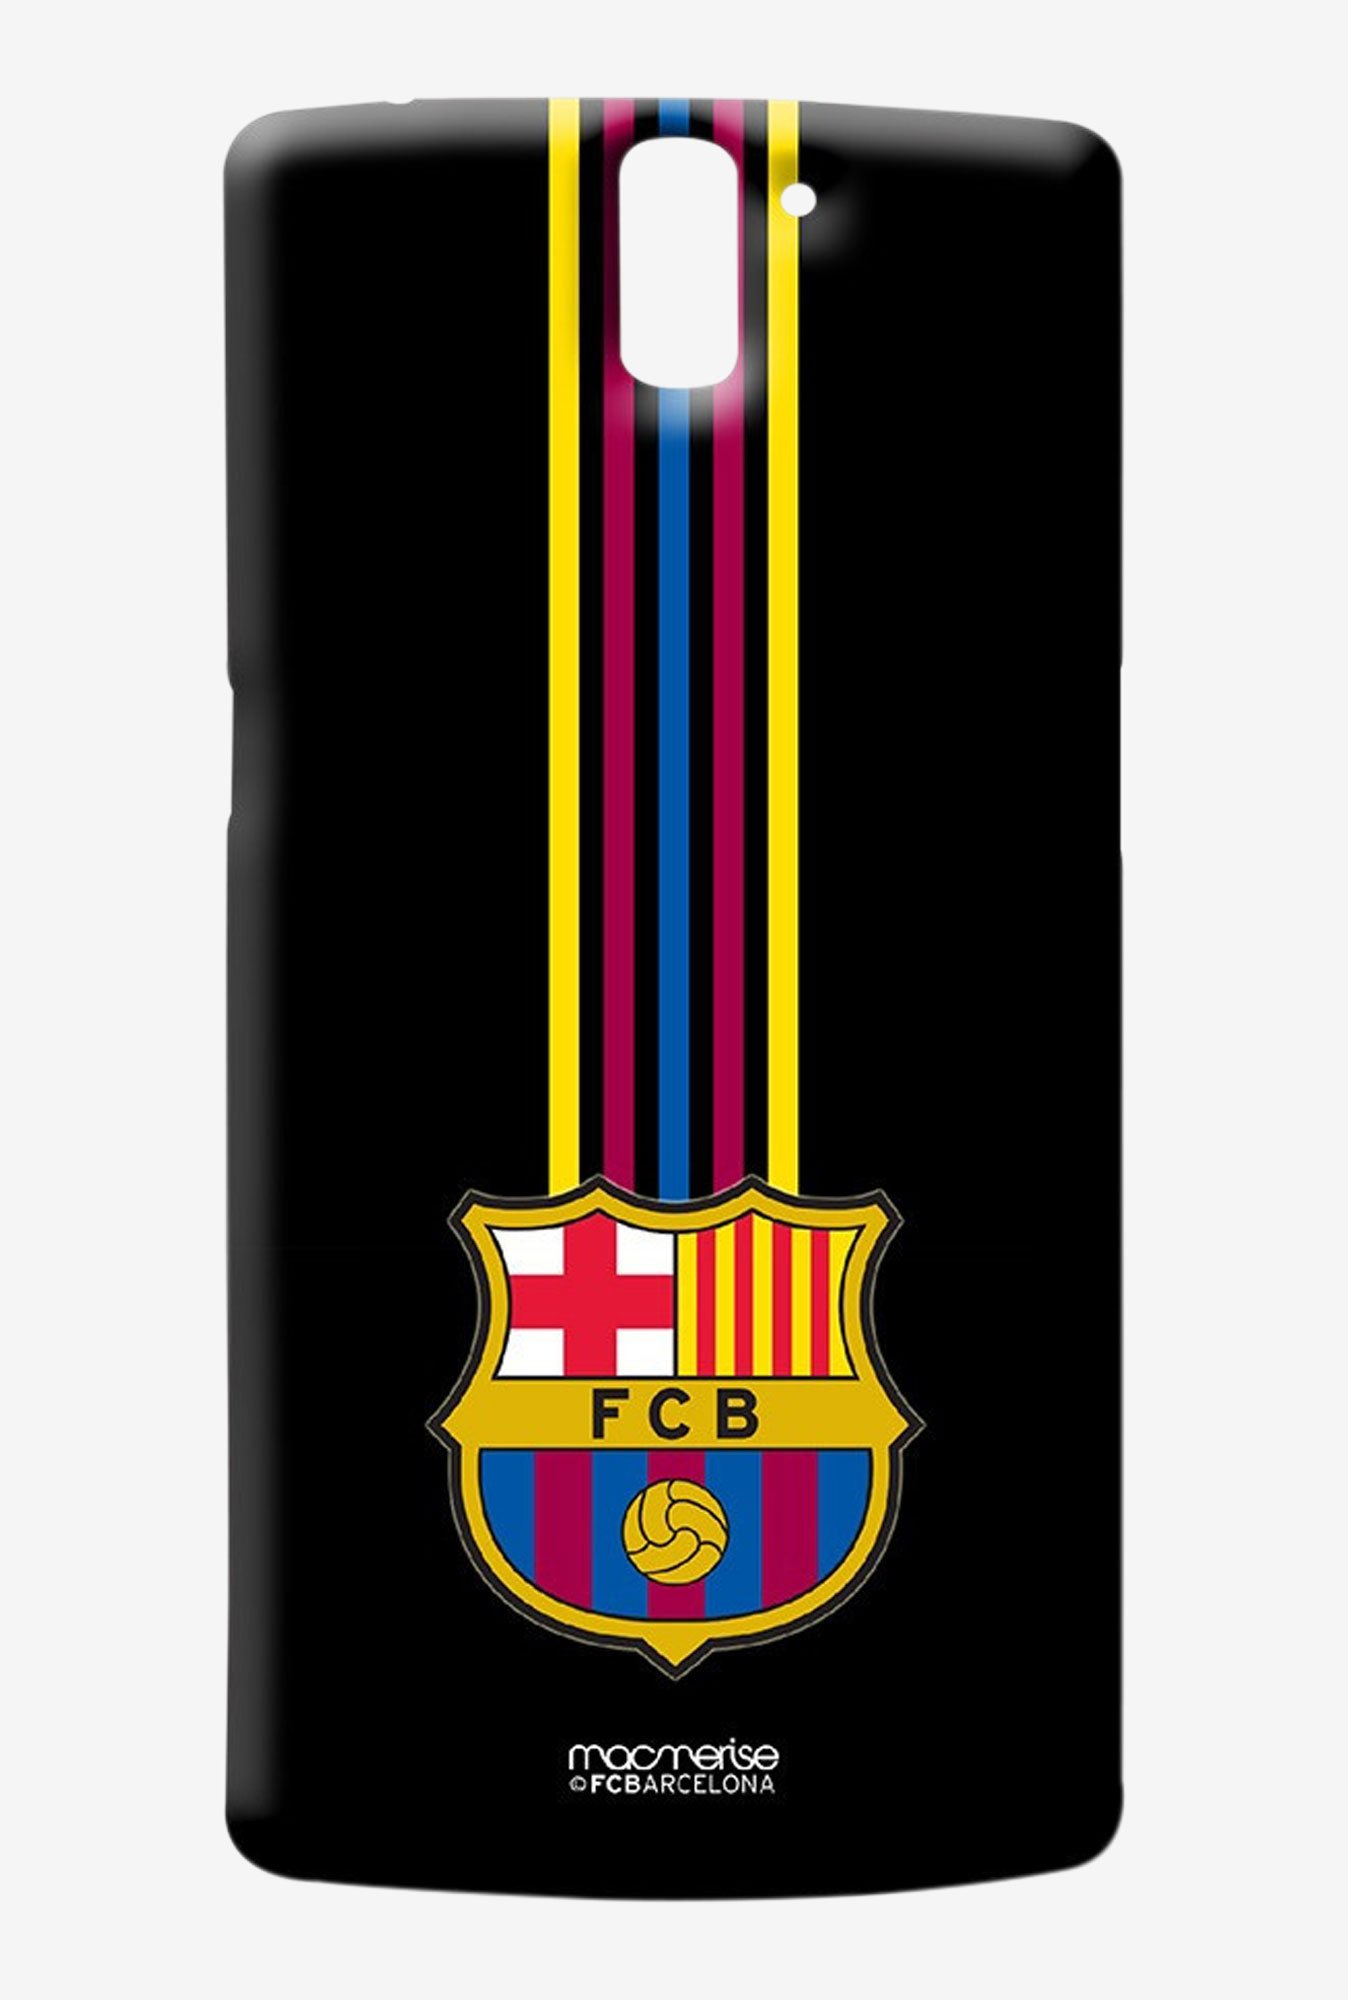 Macmerise FCB Stripes Back Sublime Case for Oneplus One